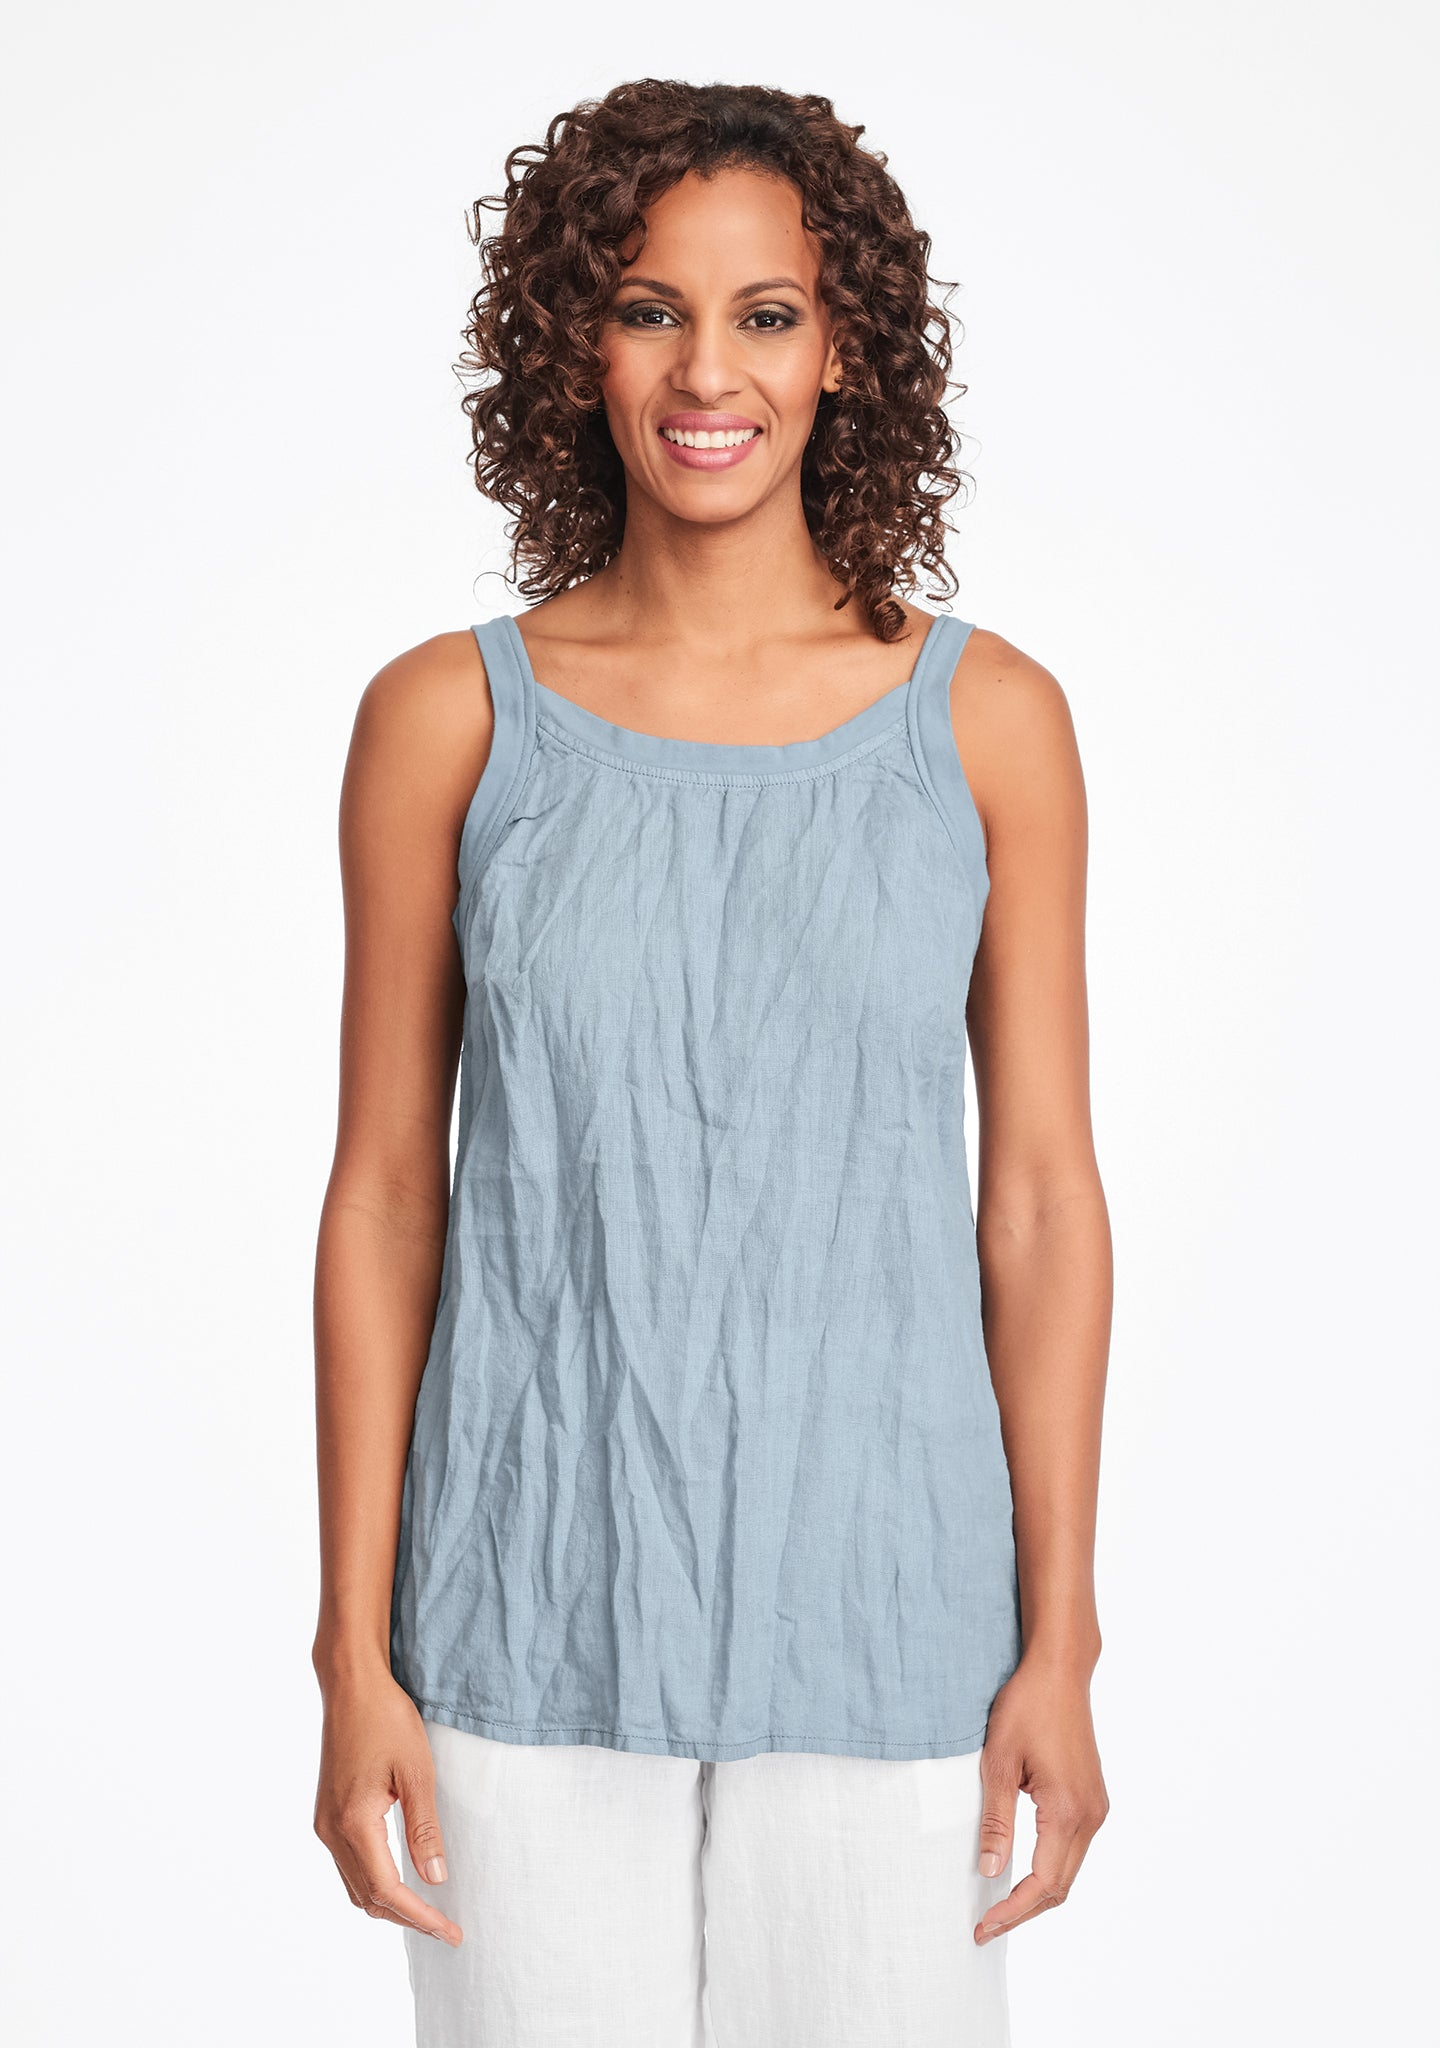 upward tunic linen tank top blue